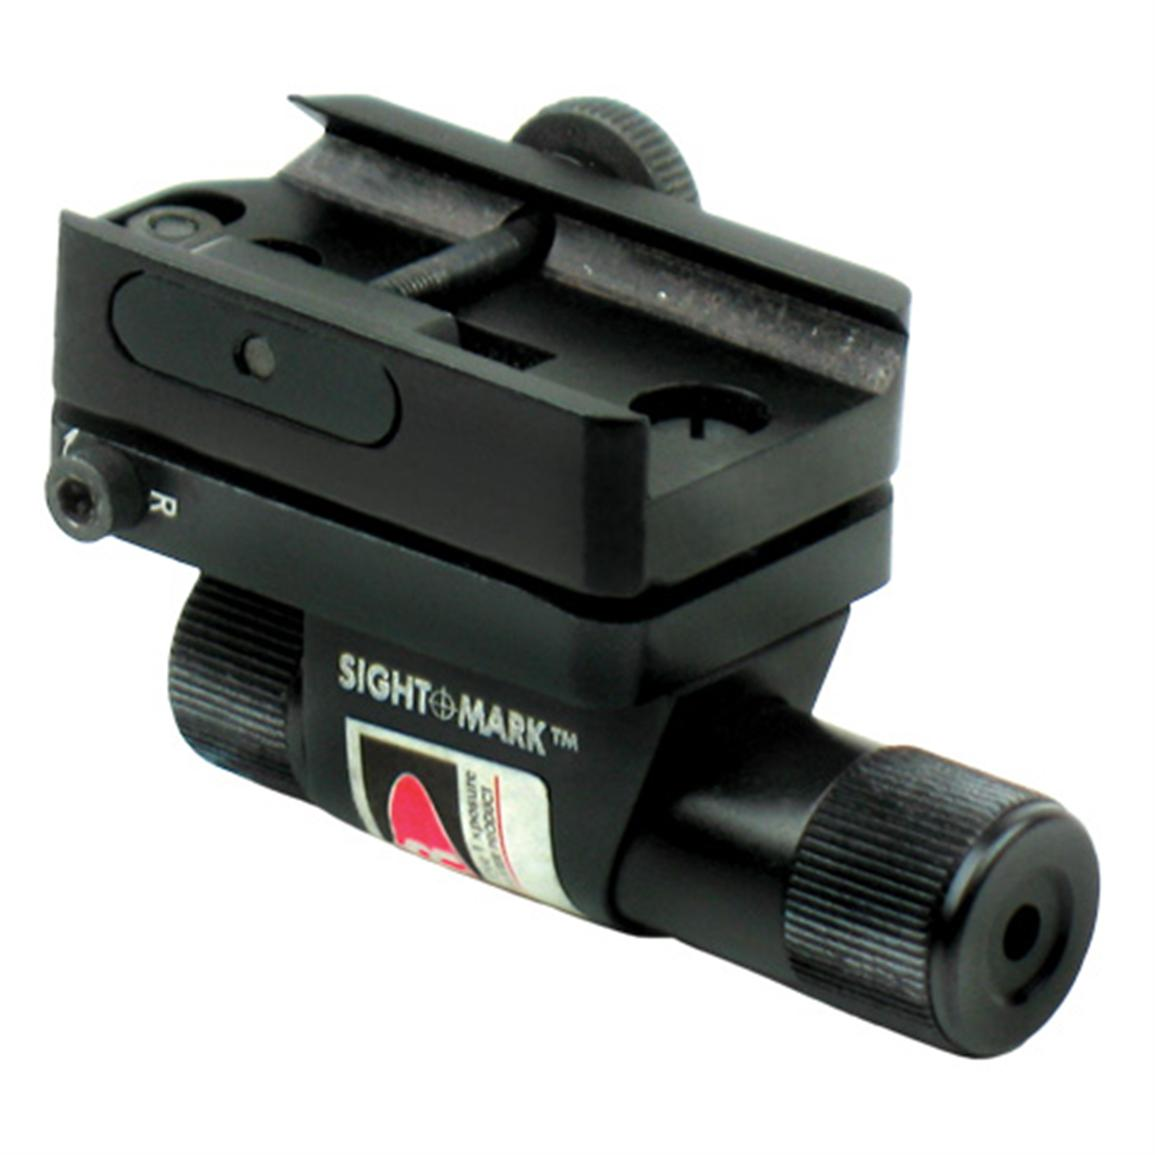 Sightmark® AACT5R Red Laser Designator